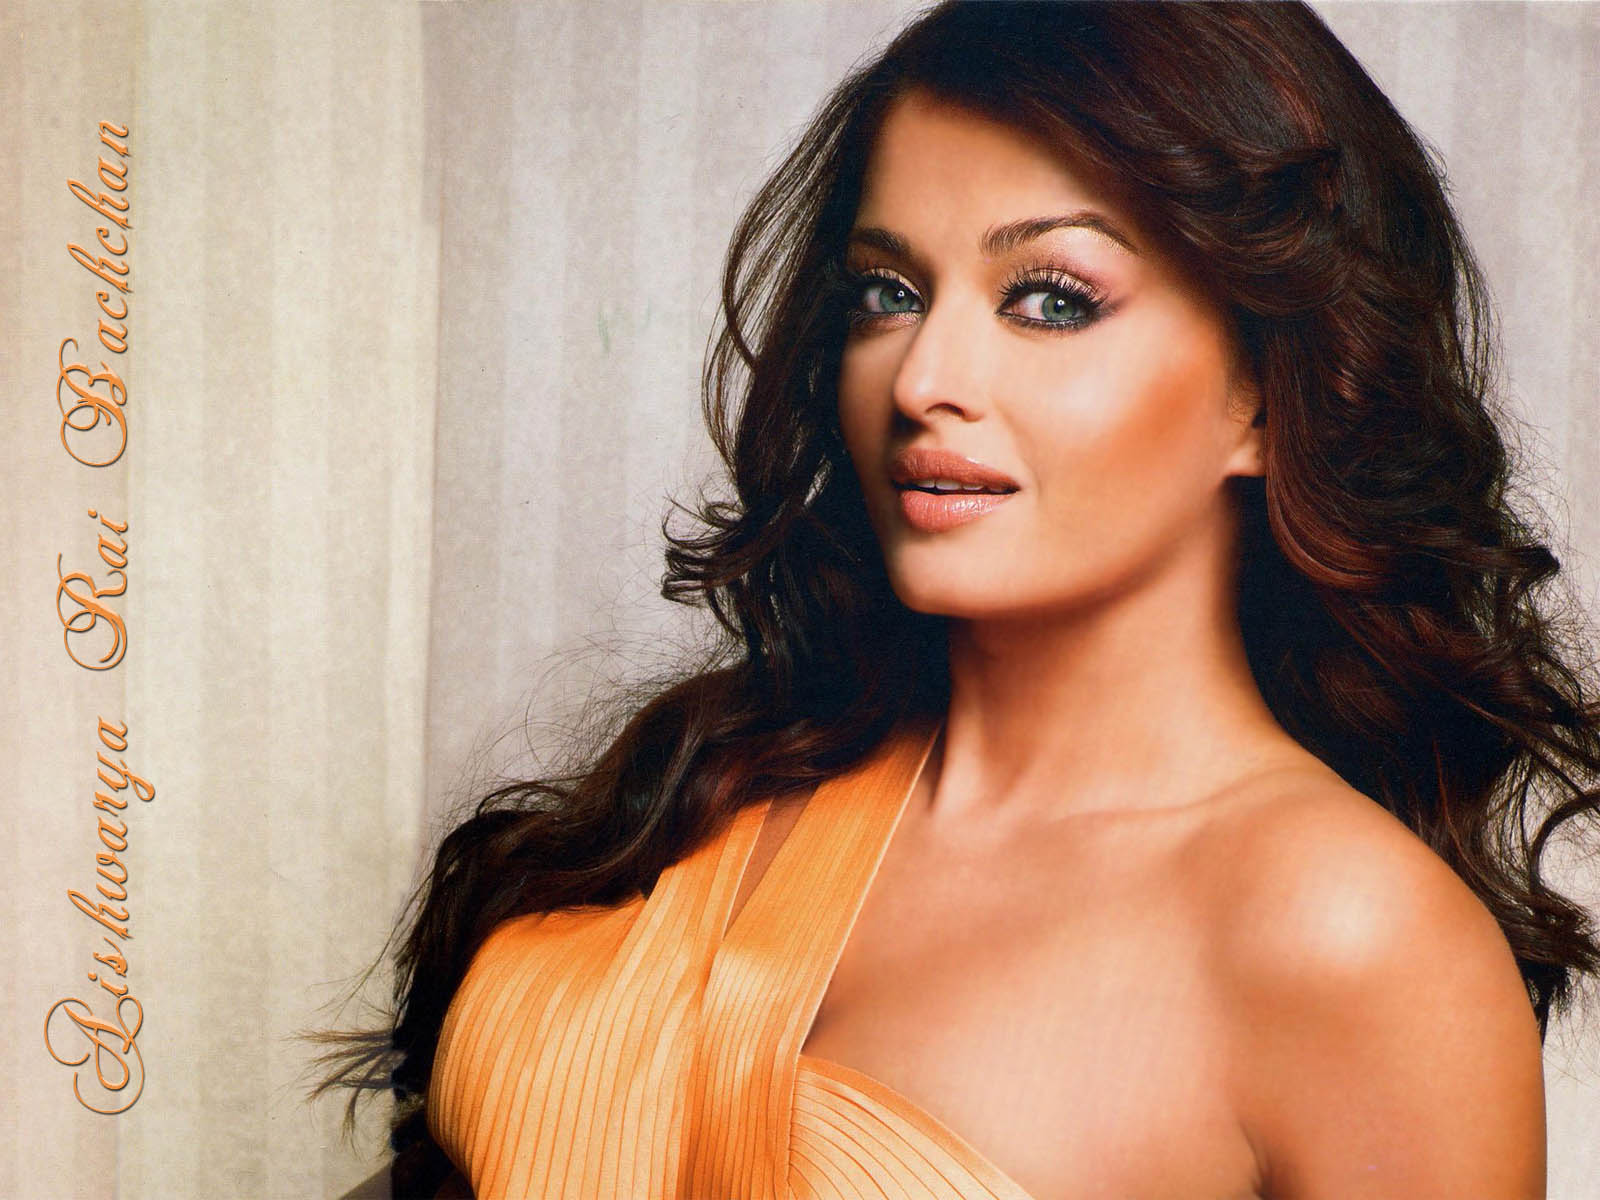 aishwarya rai nude wallpapers